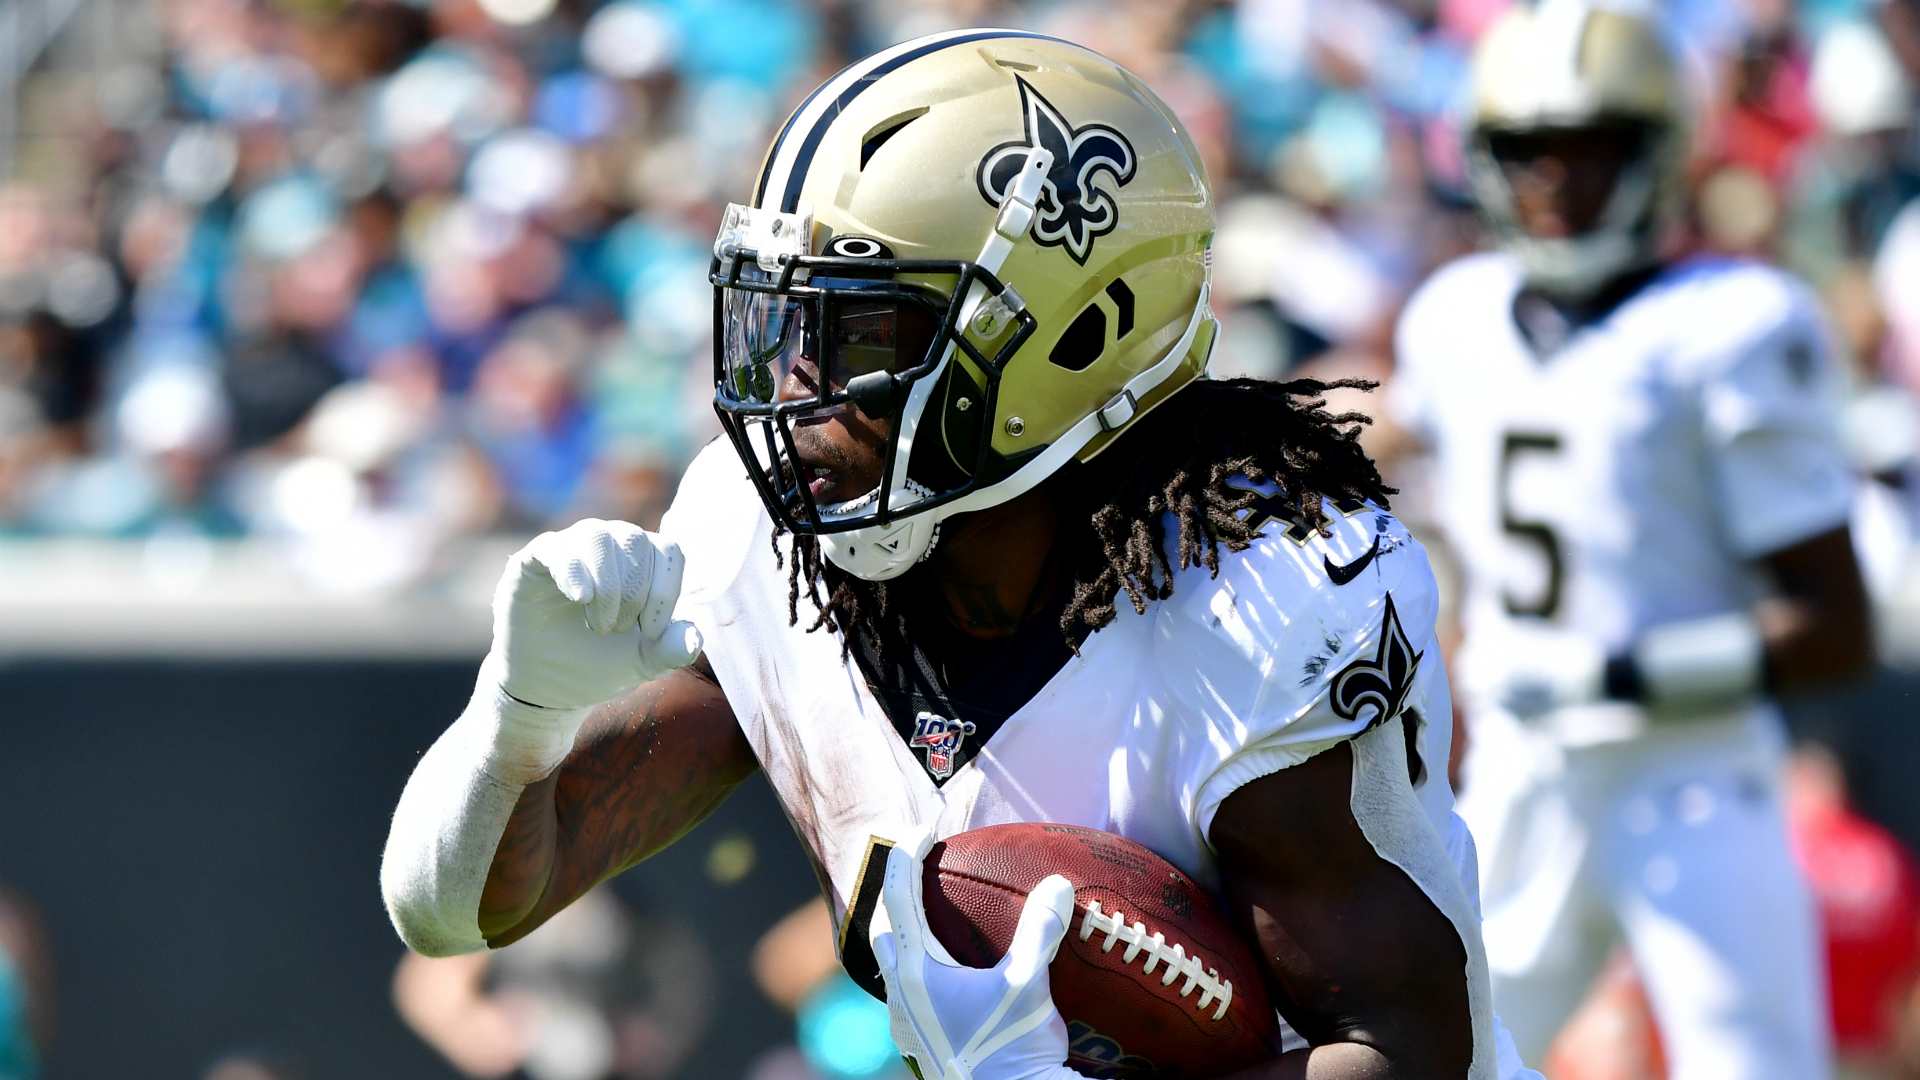 The New Orleans Saints will head to the Chicago Bears without key offensive duo Alvin Kamara and Jared Cook.